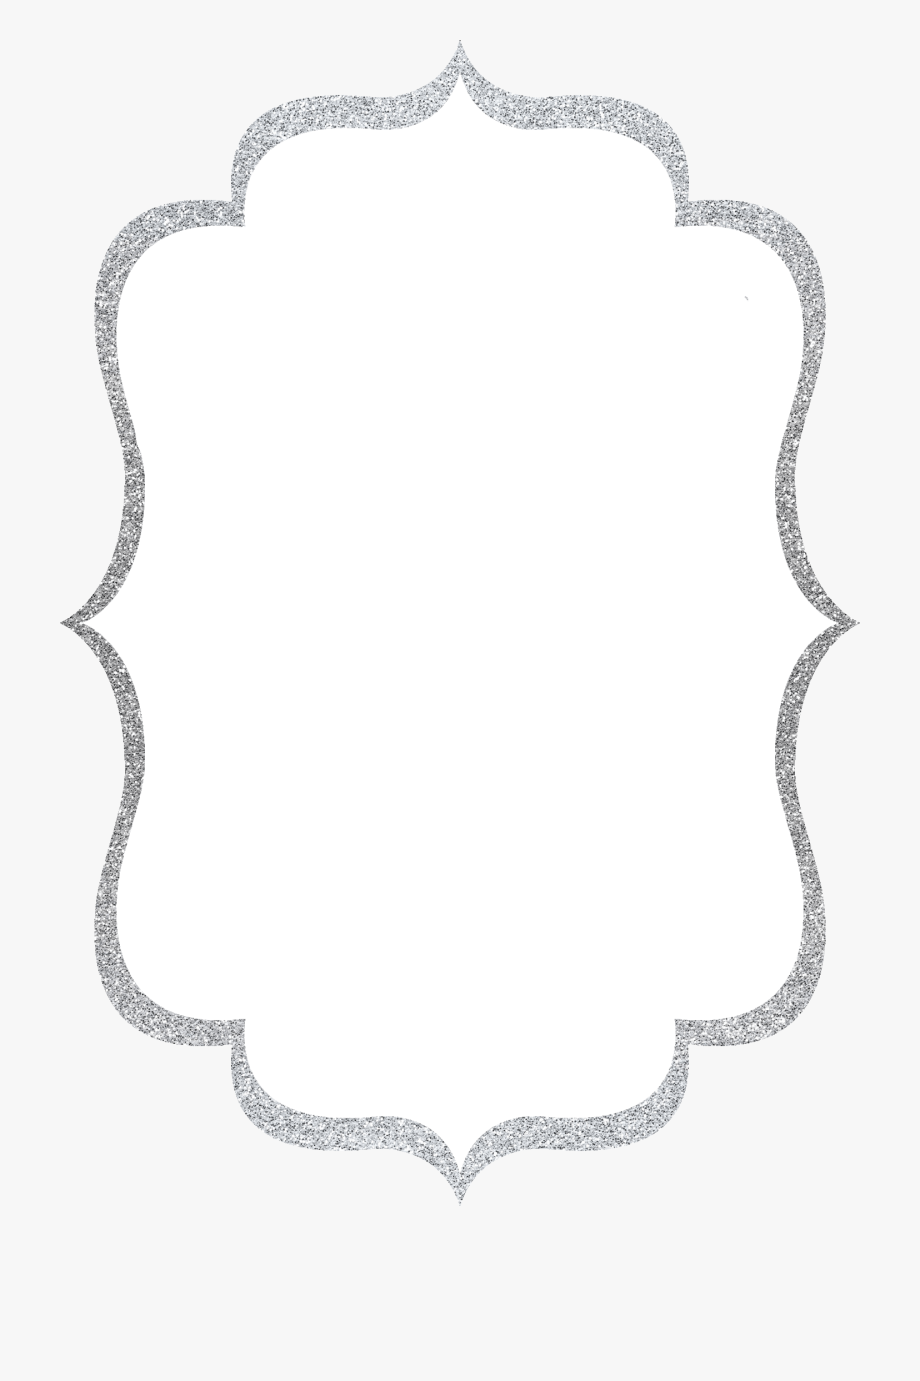 Silver glitter frame clipart vector black and white download Silver Glitter Border Clipart 3 By Alicia - Silver Glitter ... vector black and white download